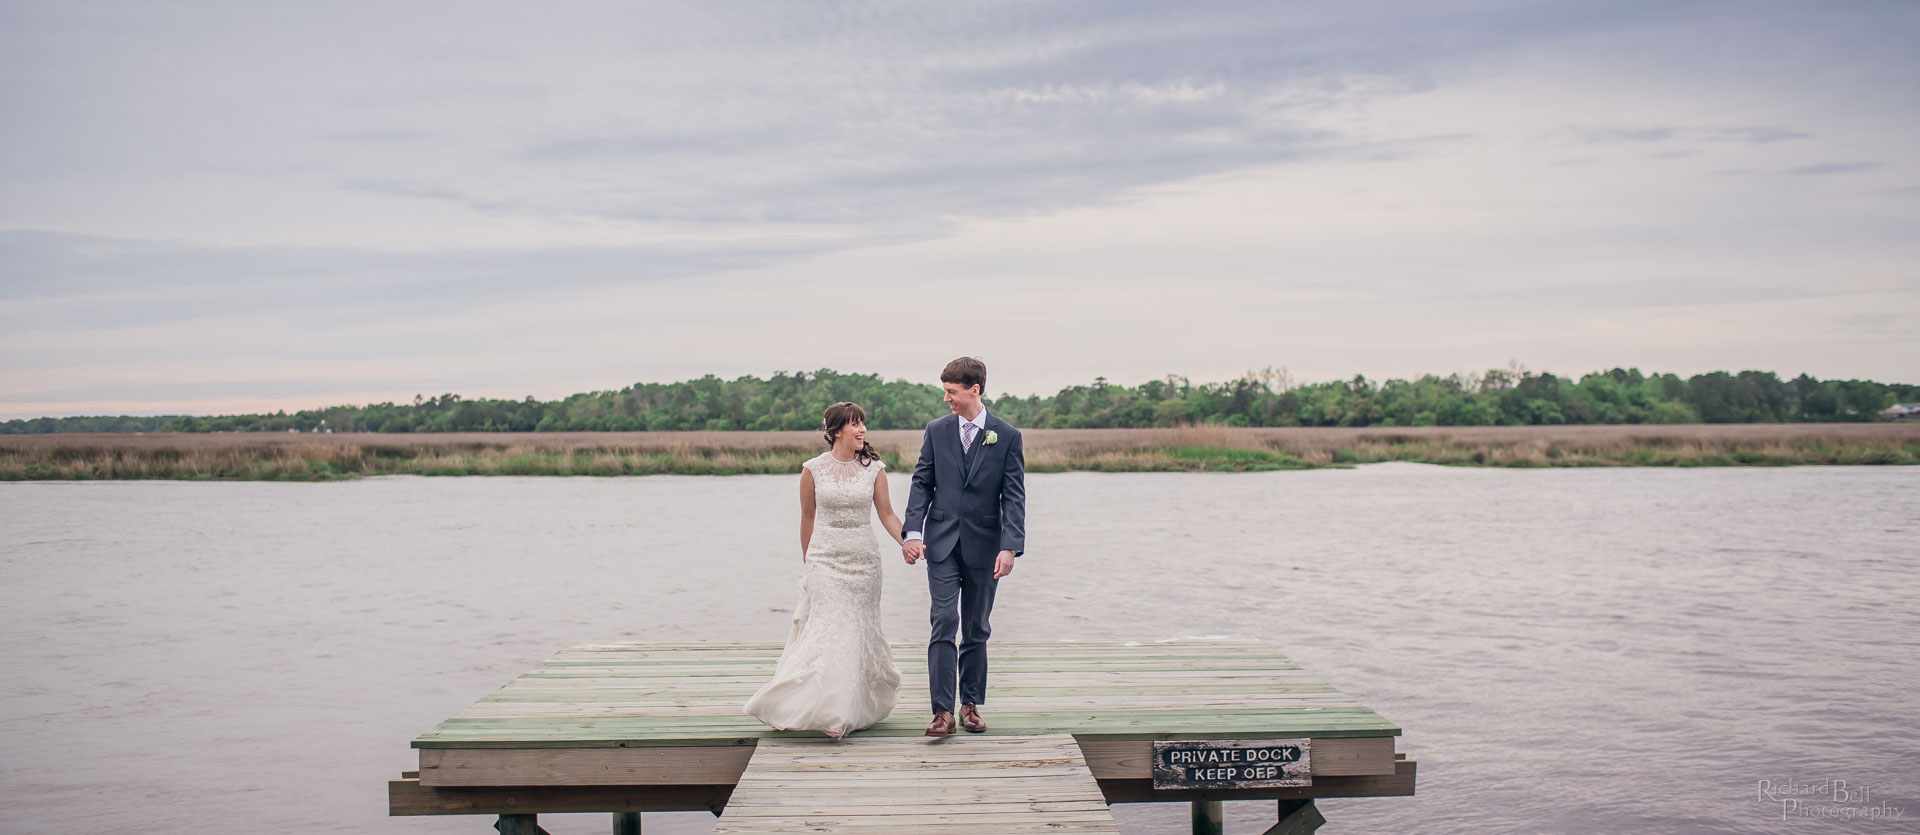 Dock with Bride and Groom